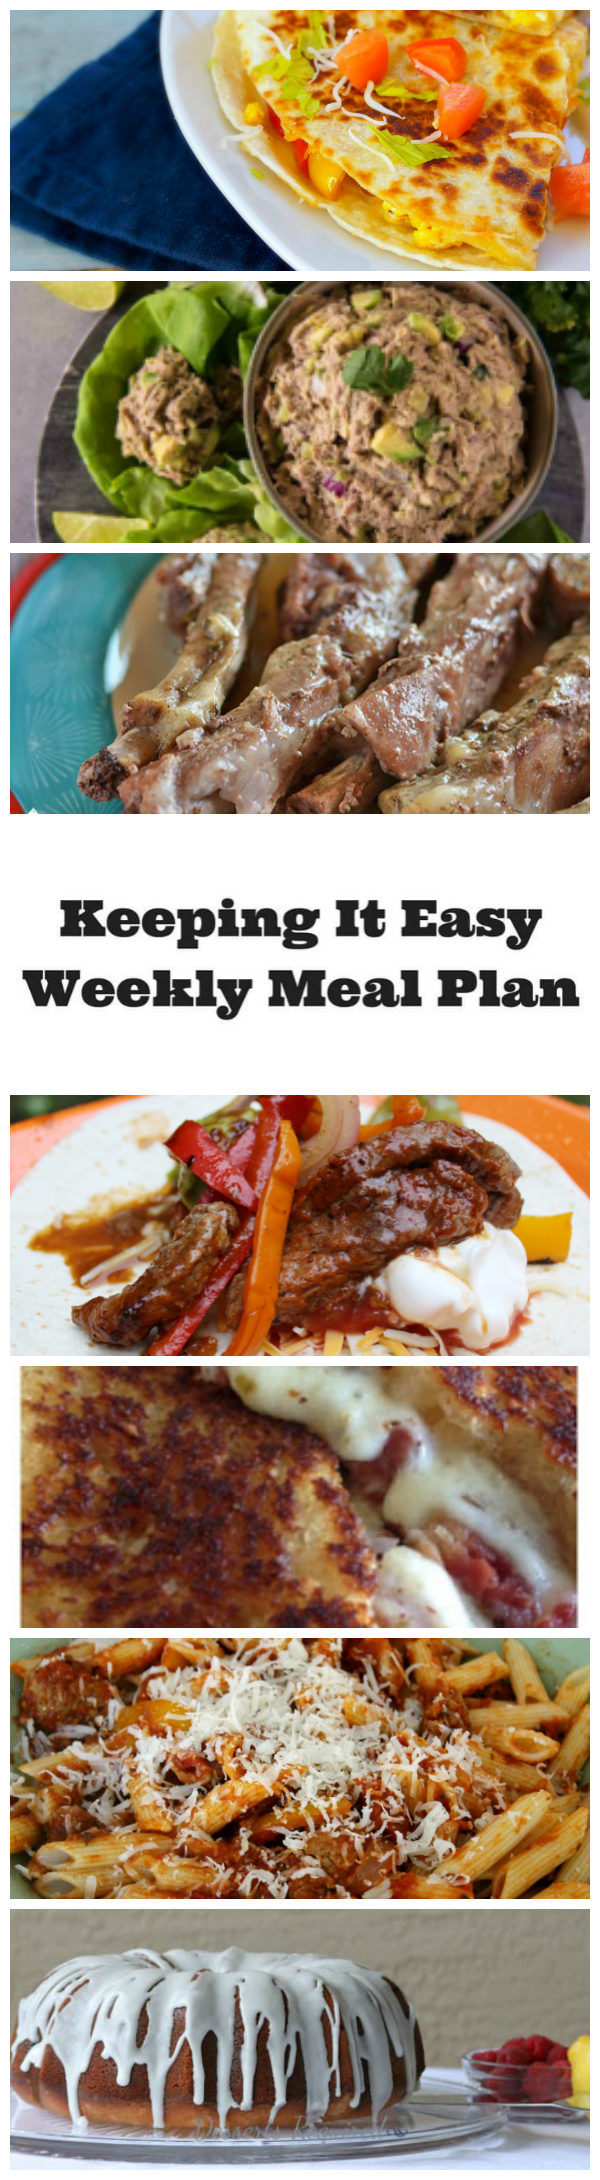 Menu planning ideas for the family for a week.